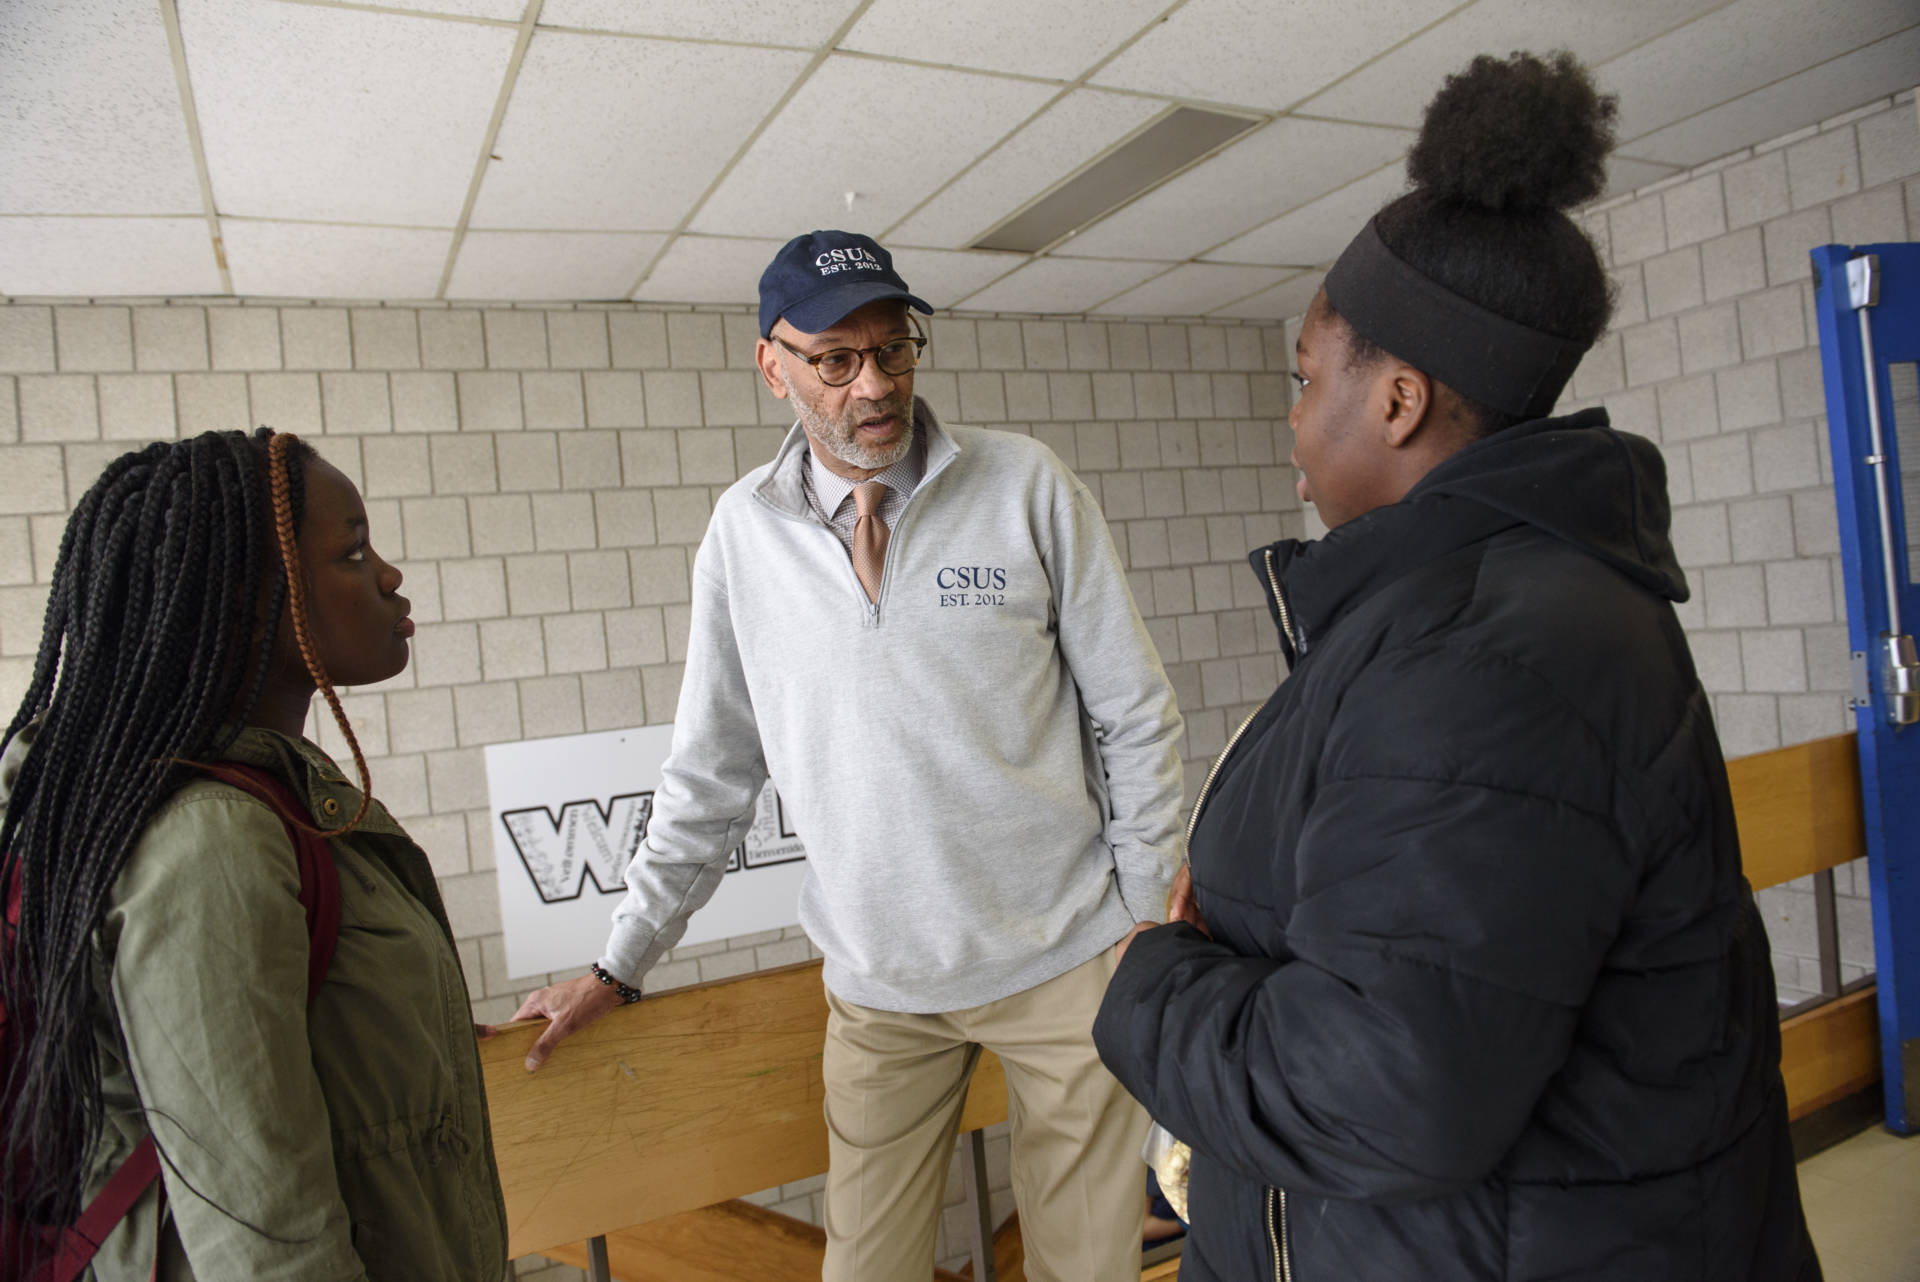 Cambridge Street Upper School principal Manuel J. Fernandez talks with students between classes, March 29, 2019, in Cambridge, MA.